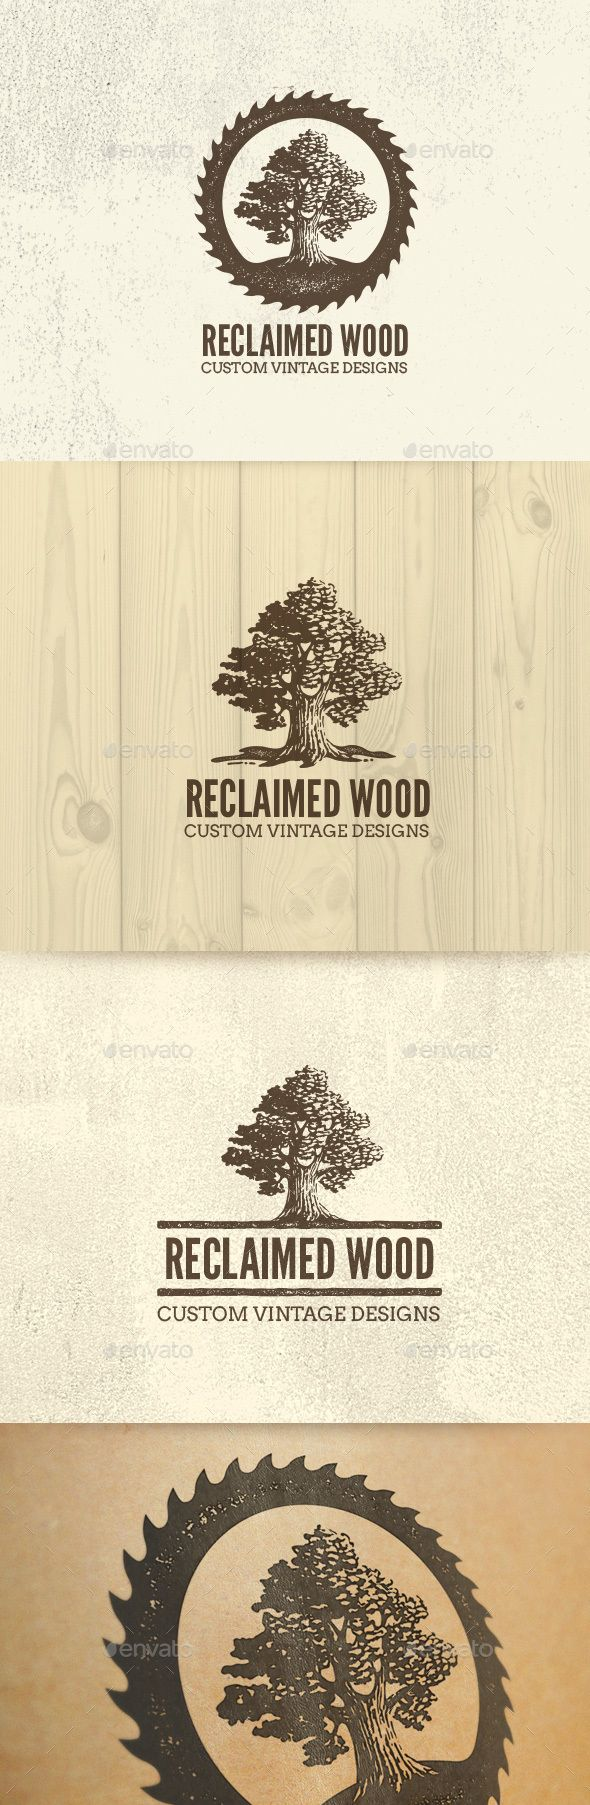 Reclaimed Wood Oak Tree Rough Artisan Logo — Photoshop PSD #handmade #workshop • Download ➝ https://graphicriver.net/item/reclaimed-wood-oak-tree-rough-artisan-logo/19687046?ref=pxcr